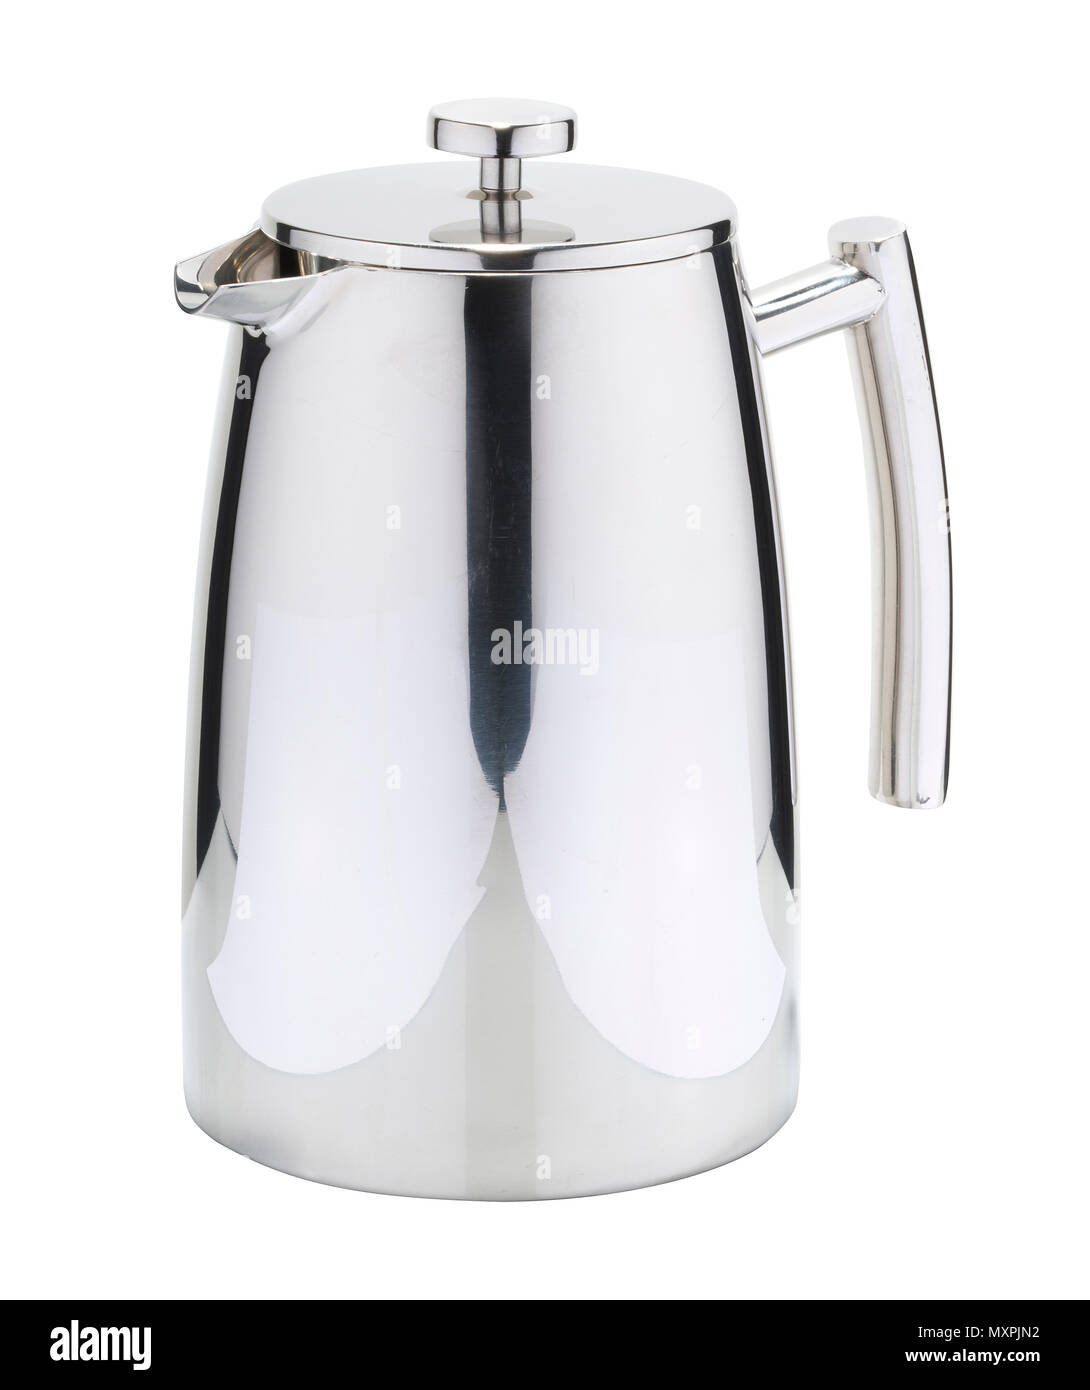 Coffee pot used mainly in the catering industry. Stainless steel, silver coloured coffeepot. - Stock Image